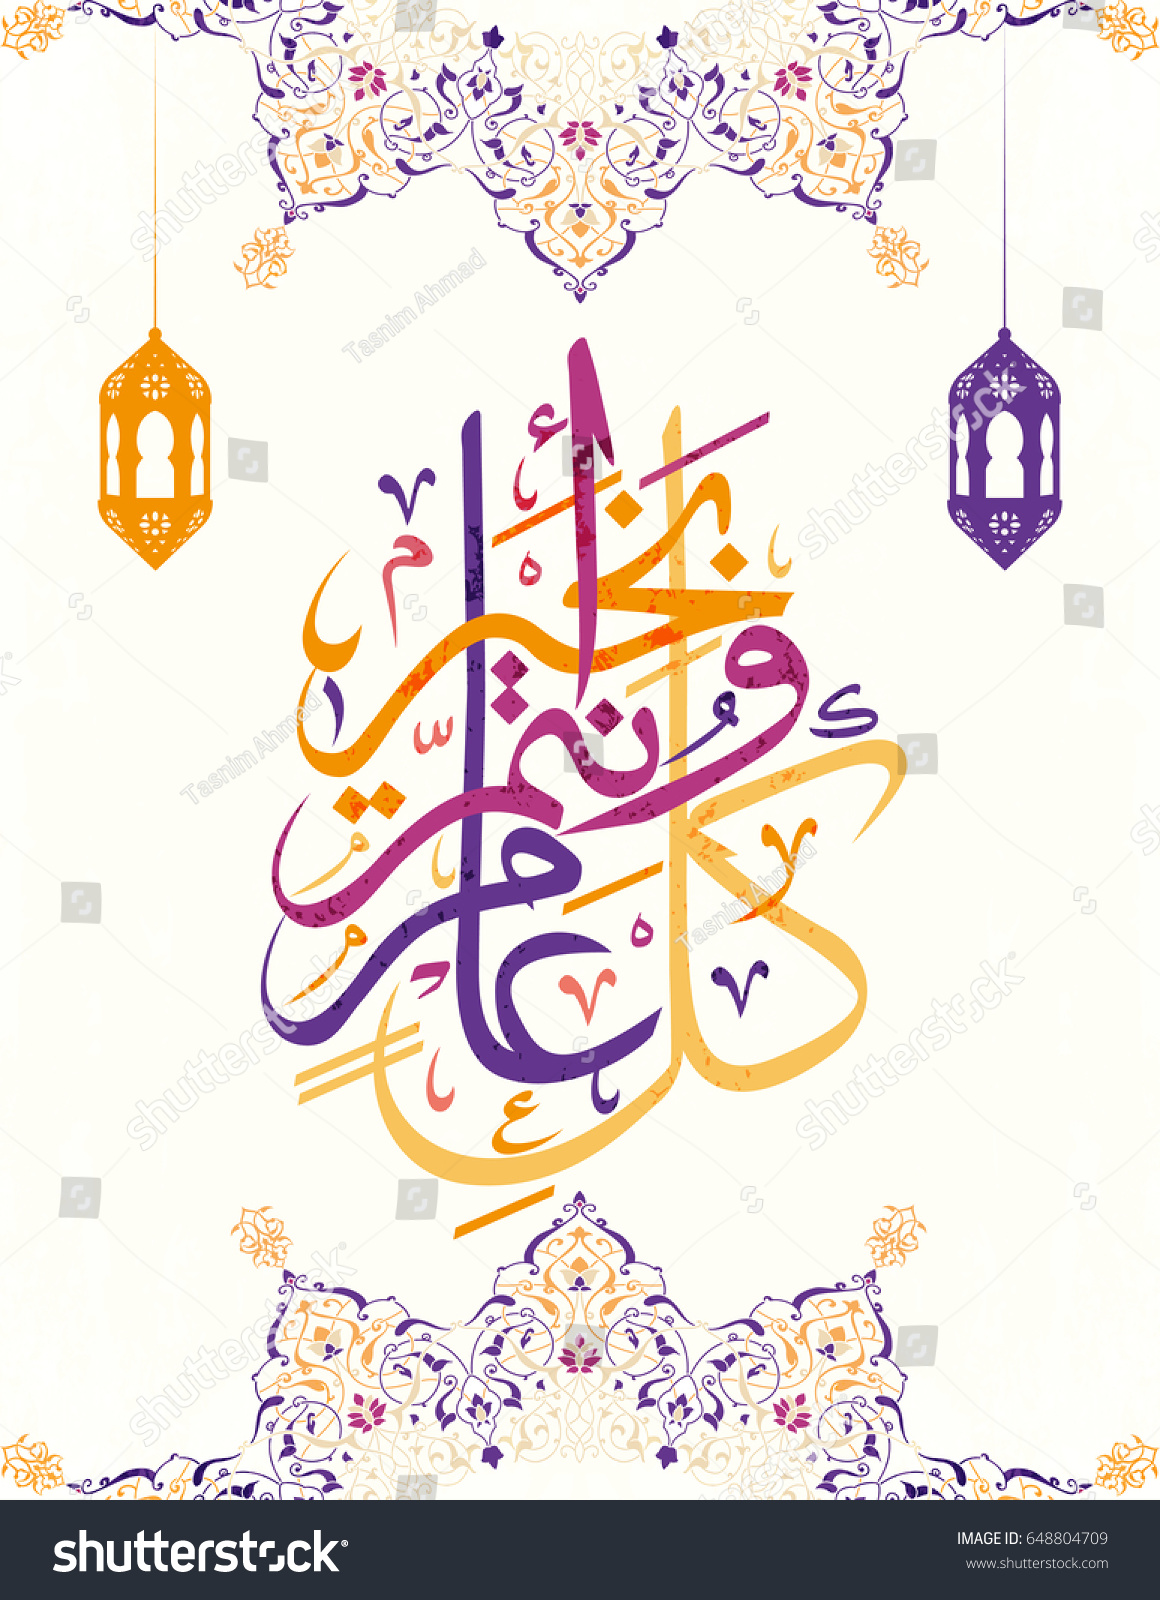 Eid greeting vector arabic calligraphy style stock vector eid greeting vector in arabic calligraphy style translation may you be well throughout the kristyandbryce Choice Image